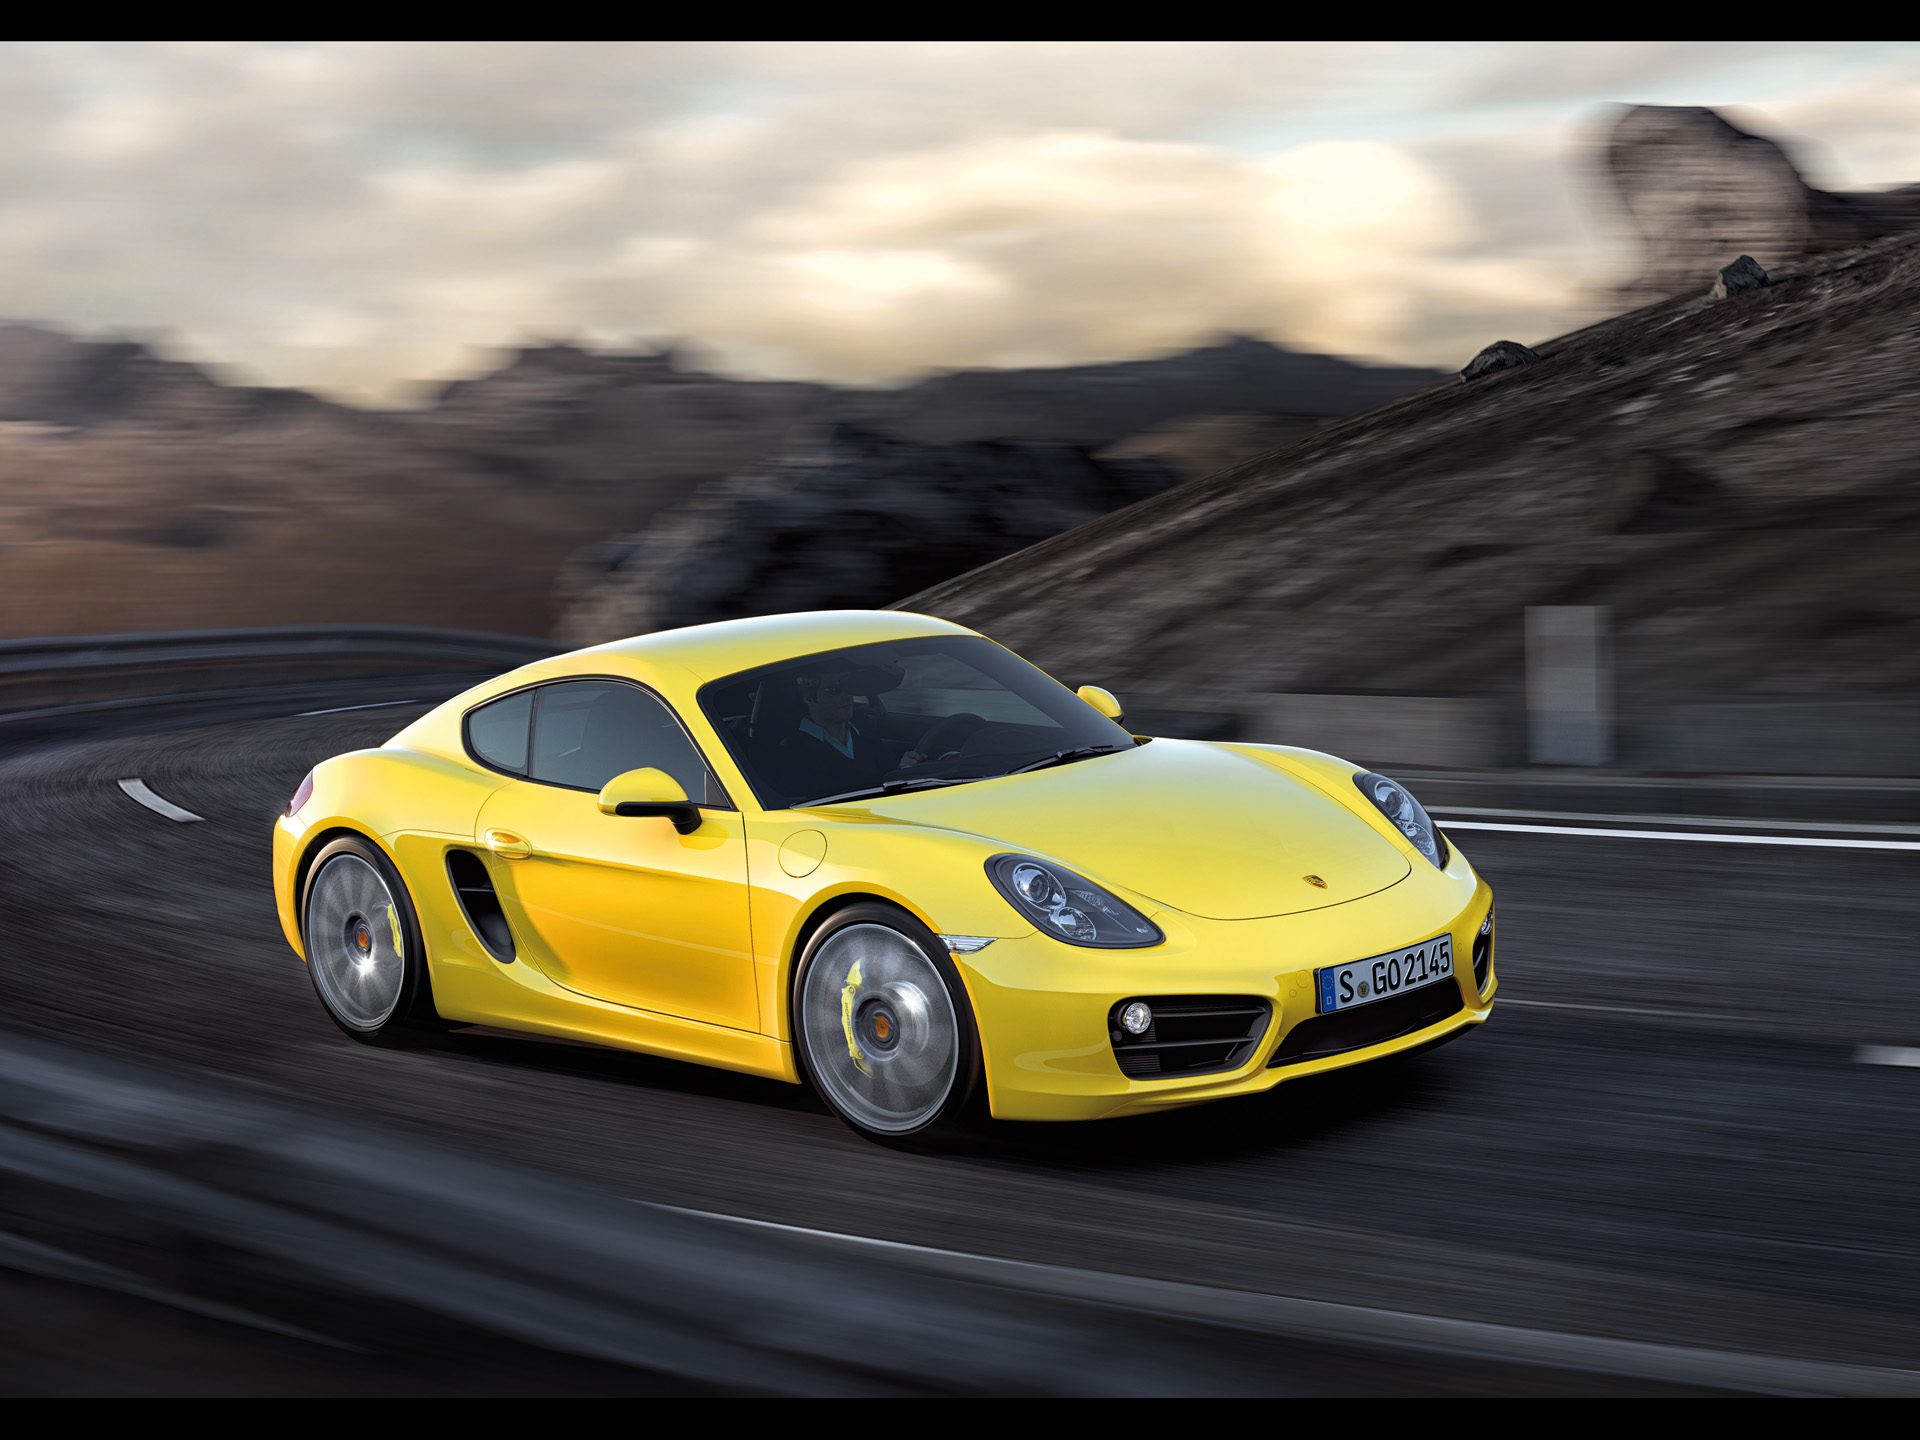 click to free download the wallpaper--Top Car Image of Porsche Cayman, Seen from Side Angle, Surrounding Scenes Tell It is in Fast Speed 1920X1440 free wallpaper download